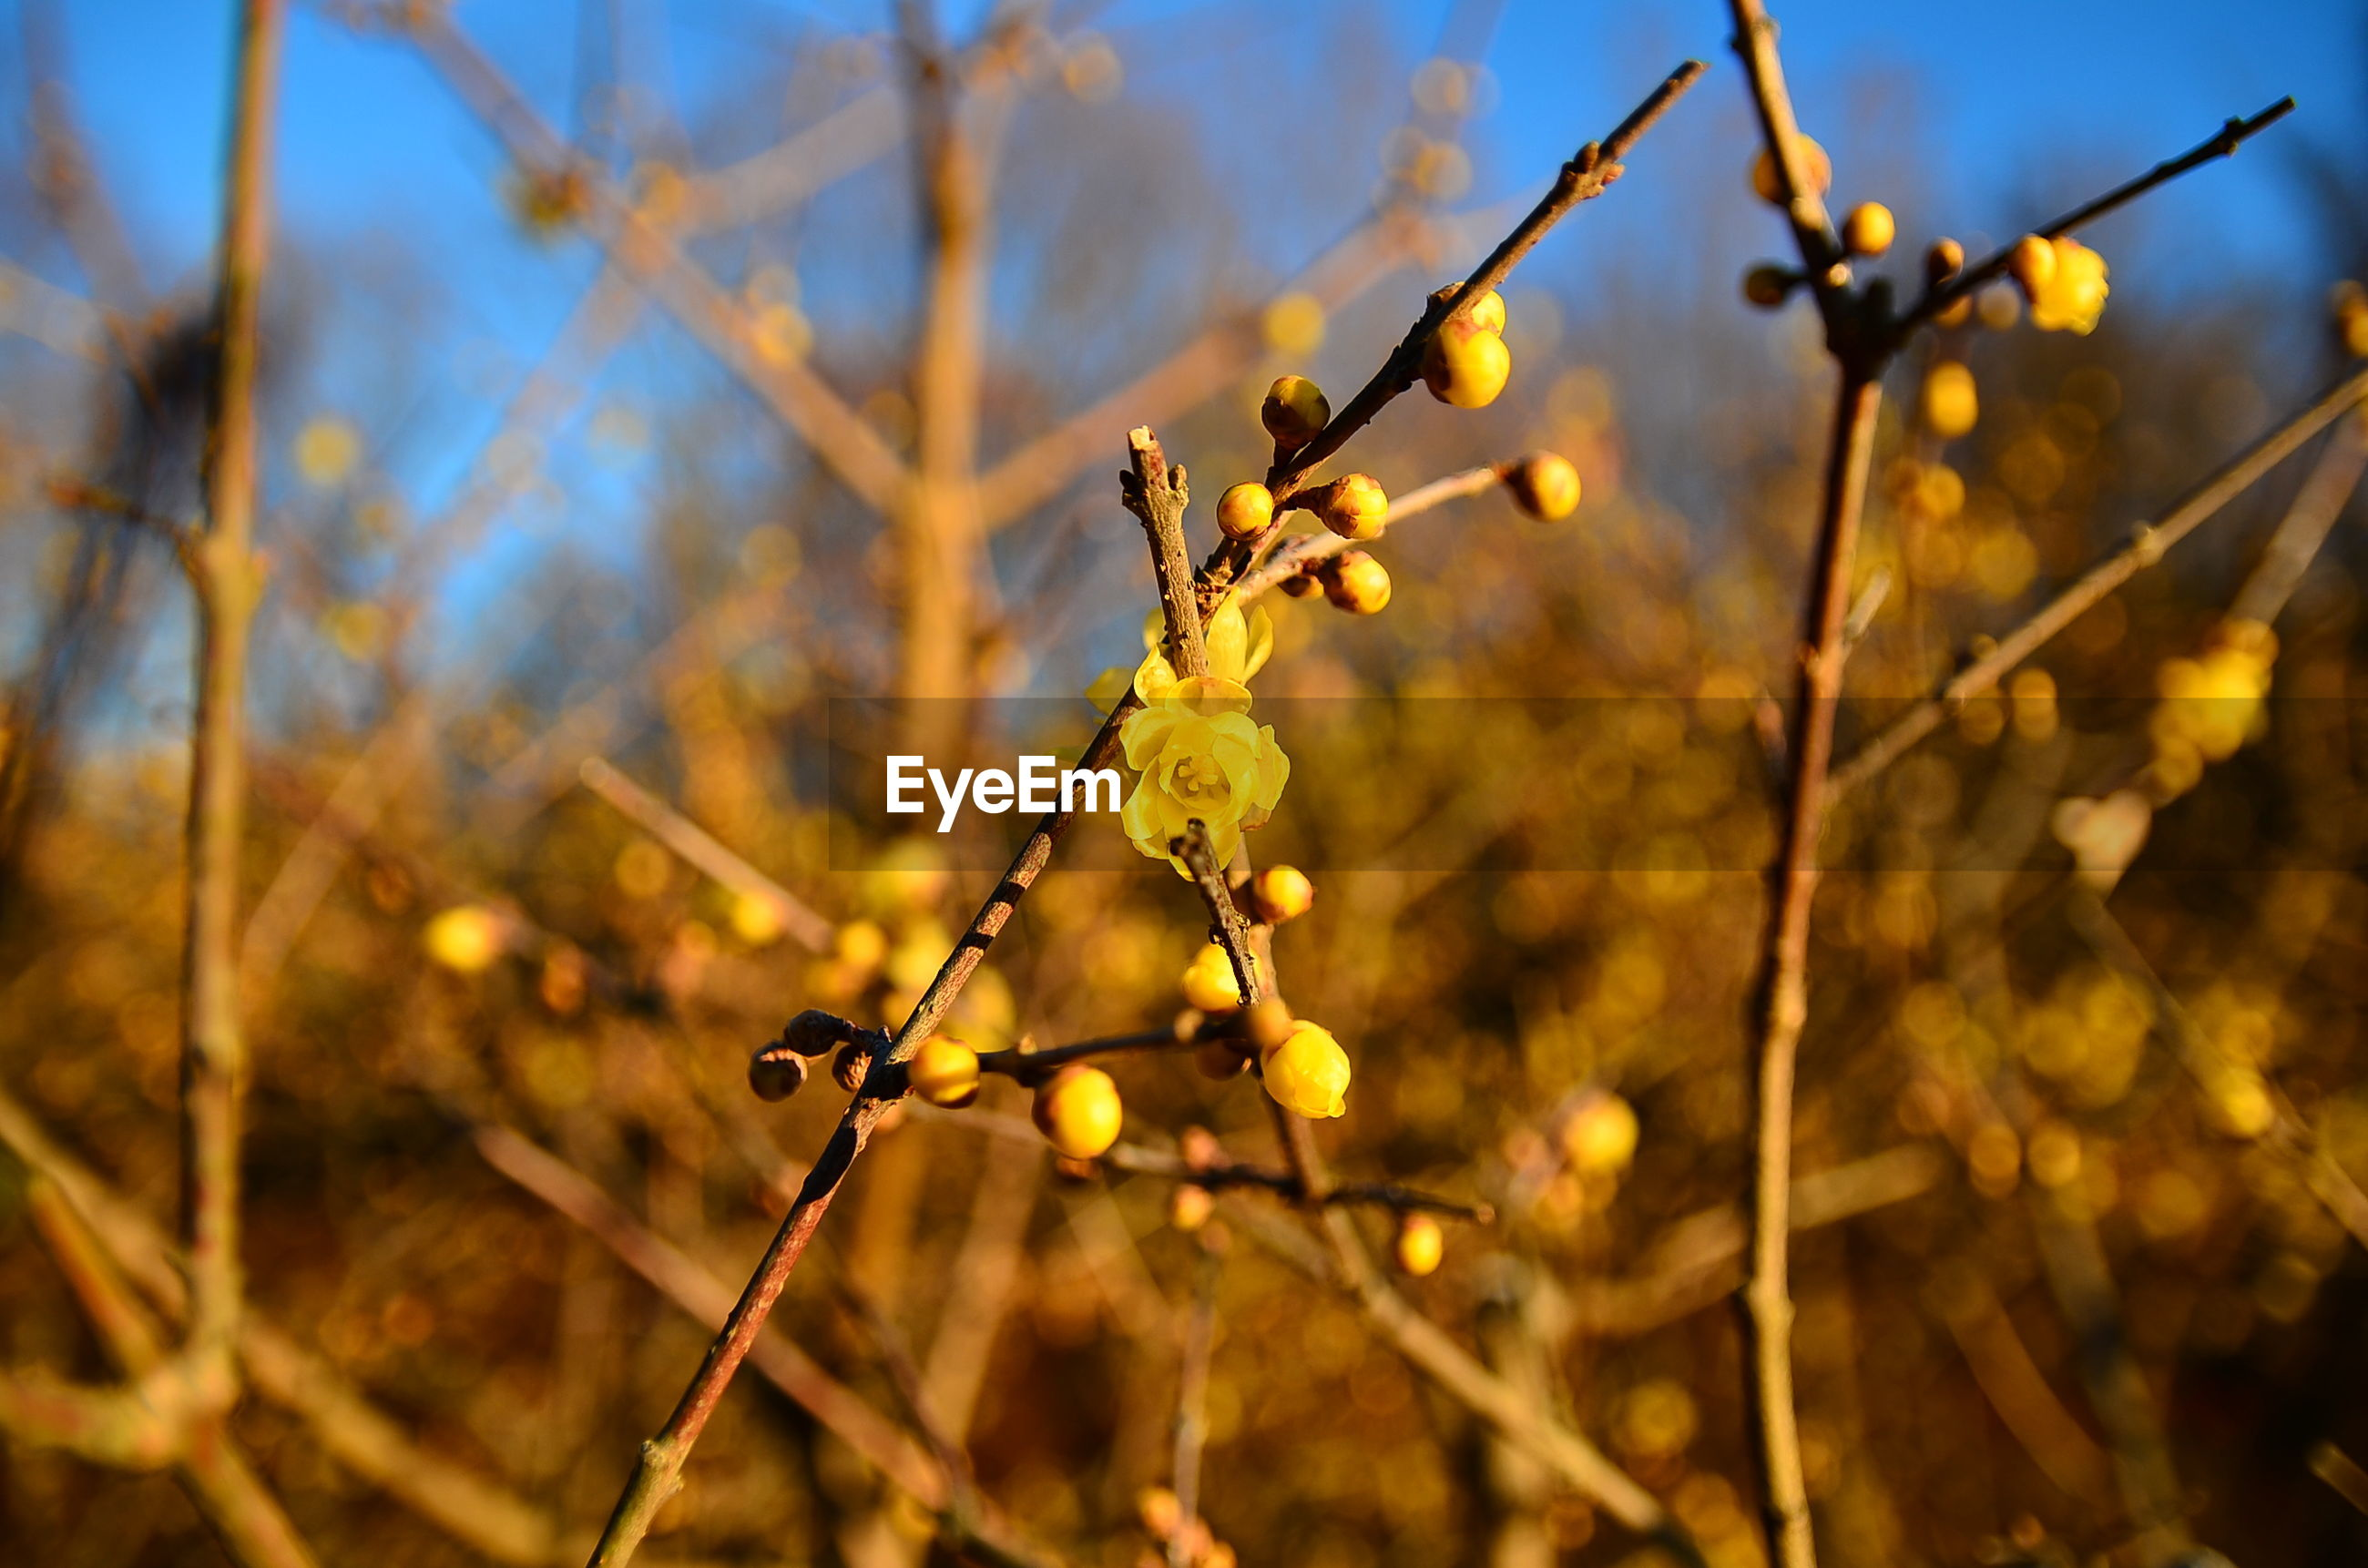 focus on foreground, close-up, growth, dry, nature, branch, twig, selective focus, field, plant, stem, tranquility, yellow, outdoors, sunlight, no people, sky, barbed wire, day, agriculture